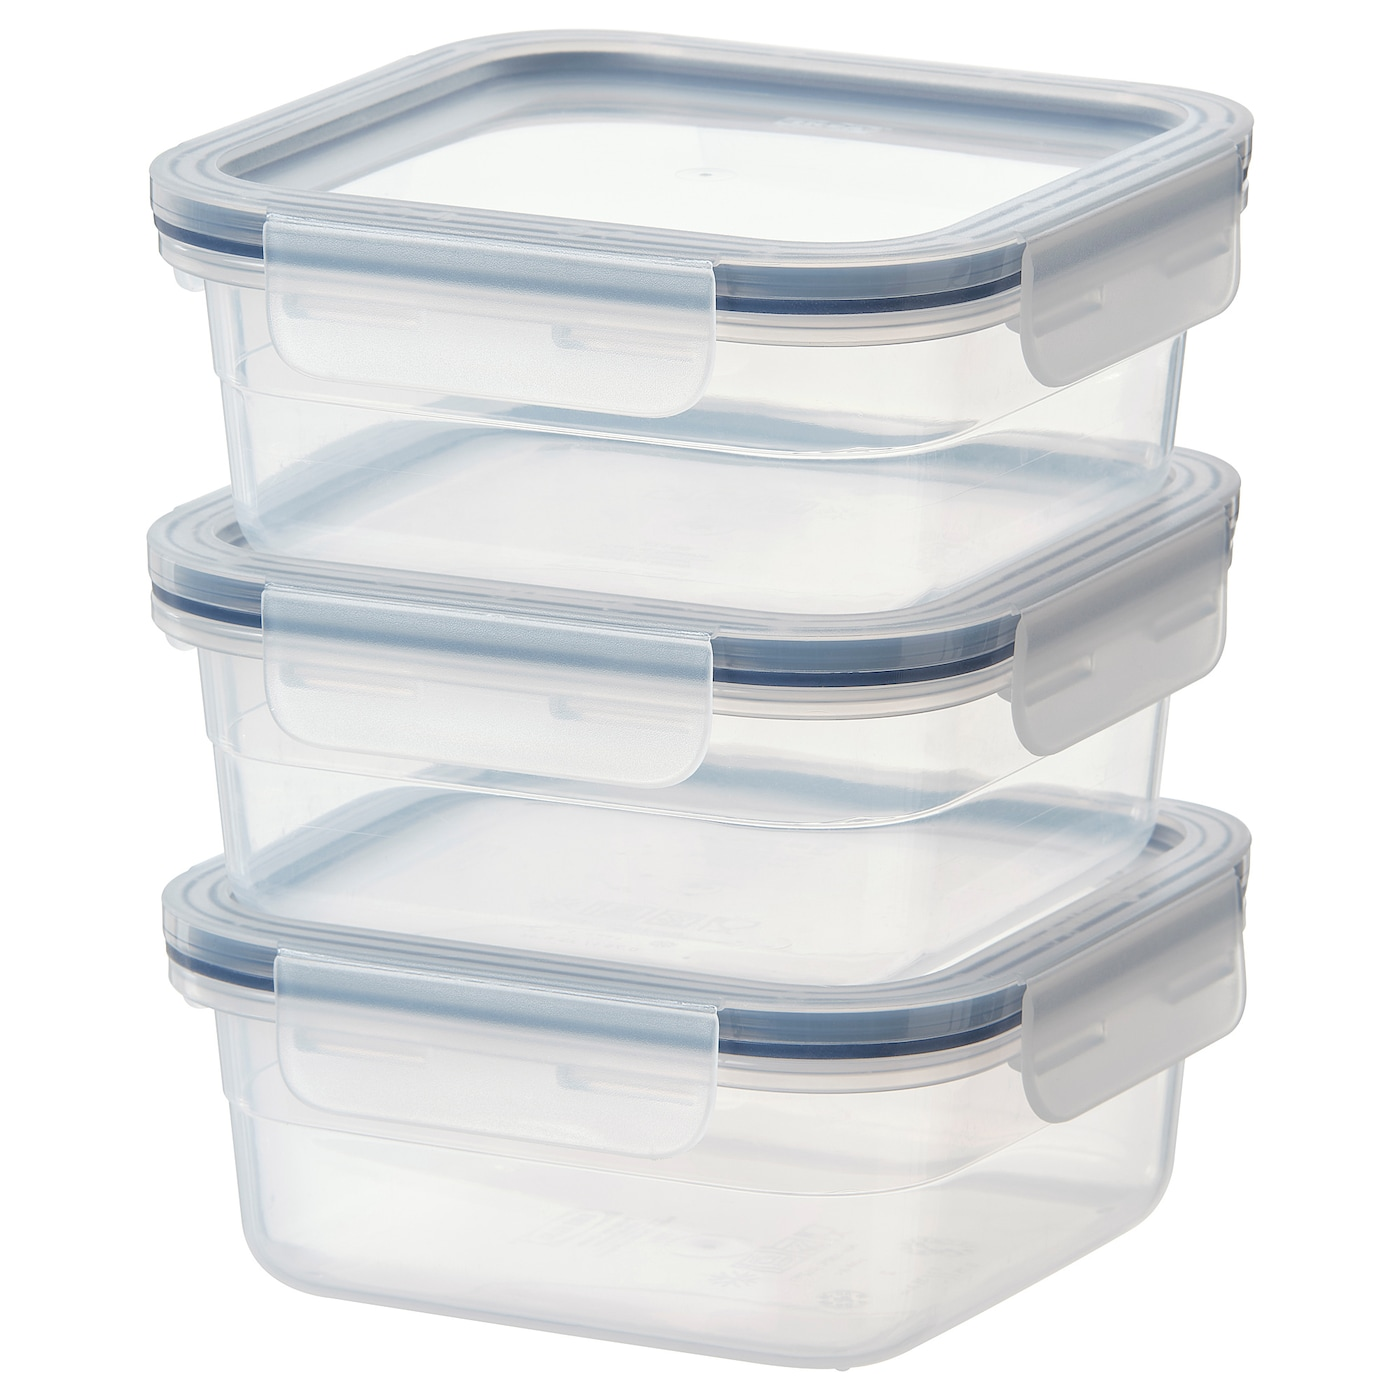 Ikea 365 Food Container Square